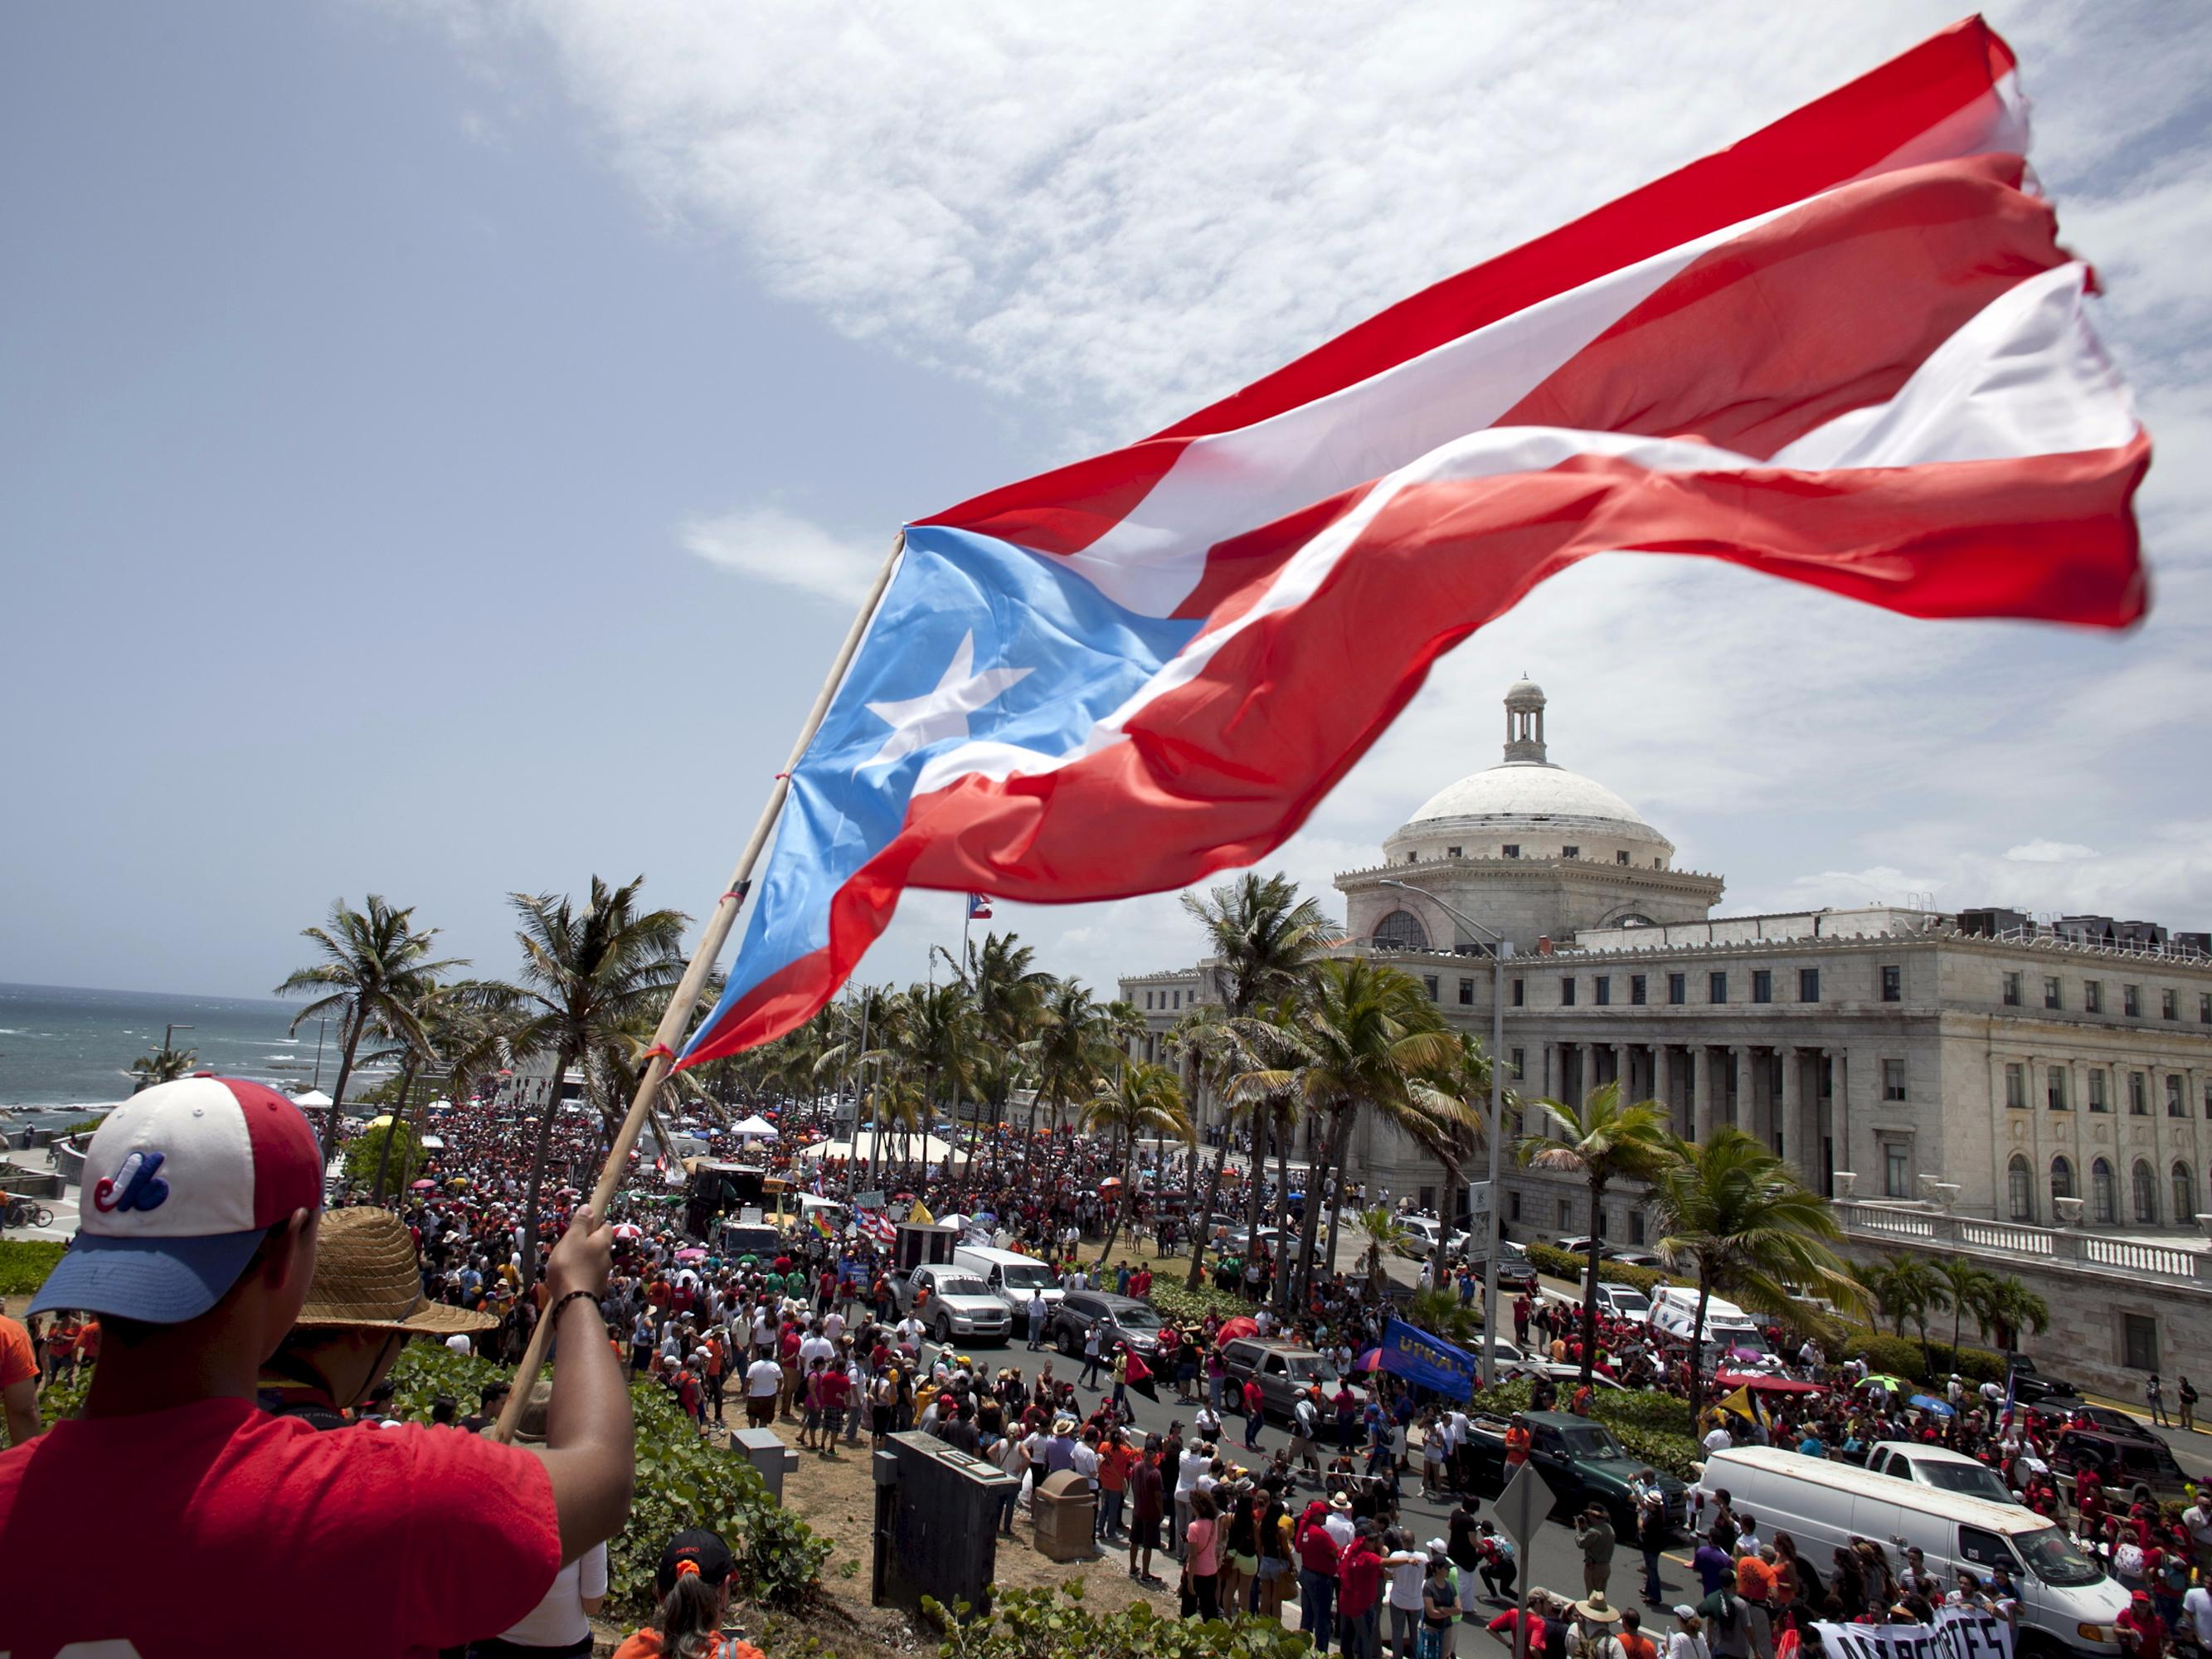 Puerto Rico is in a 24-hour debt showdown again